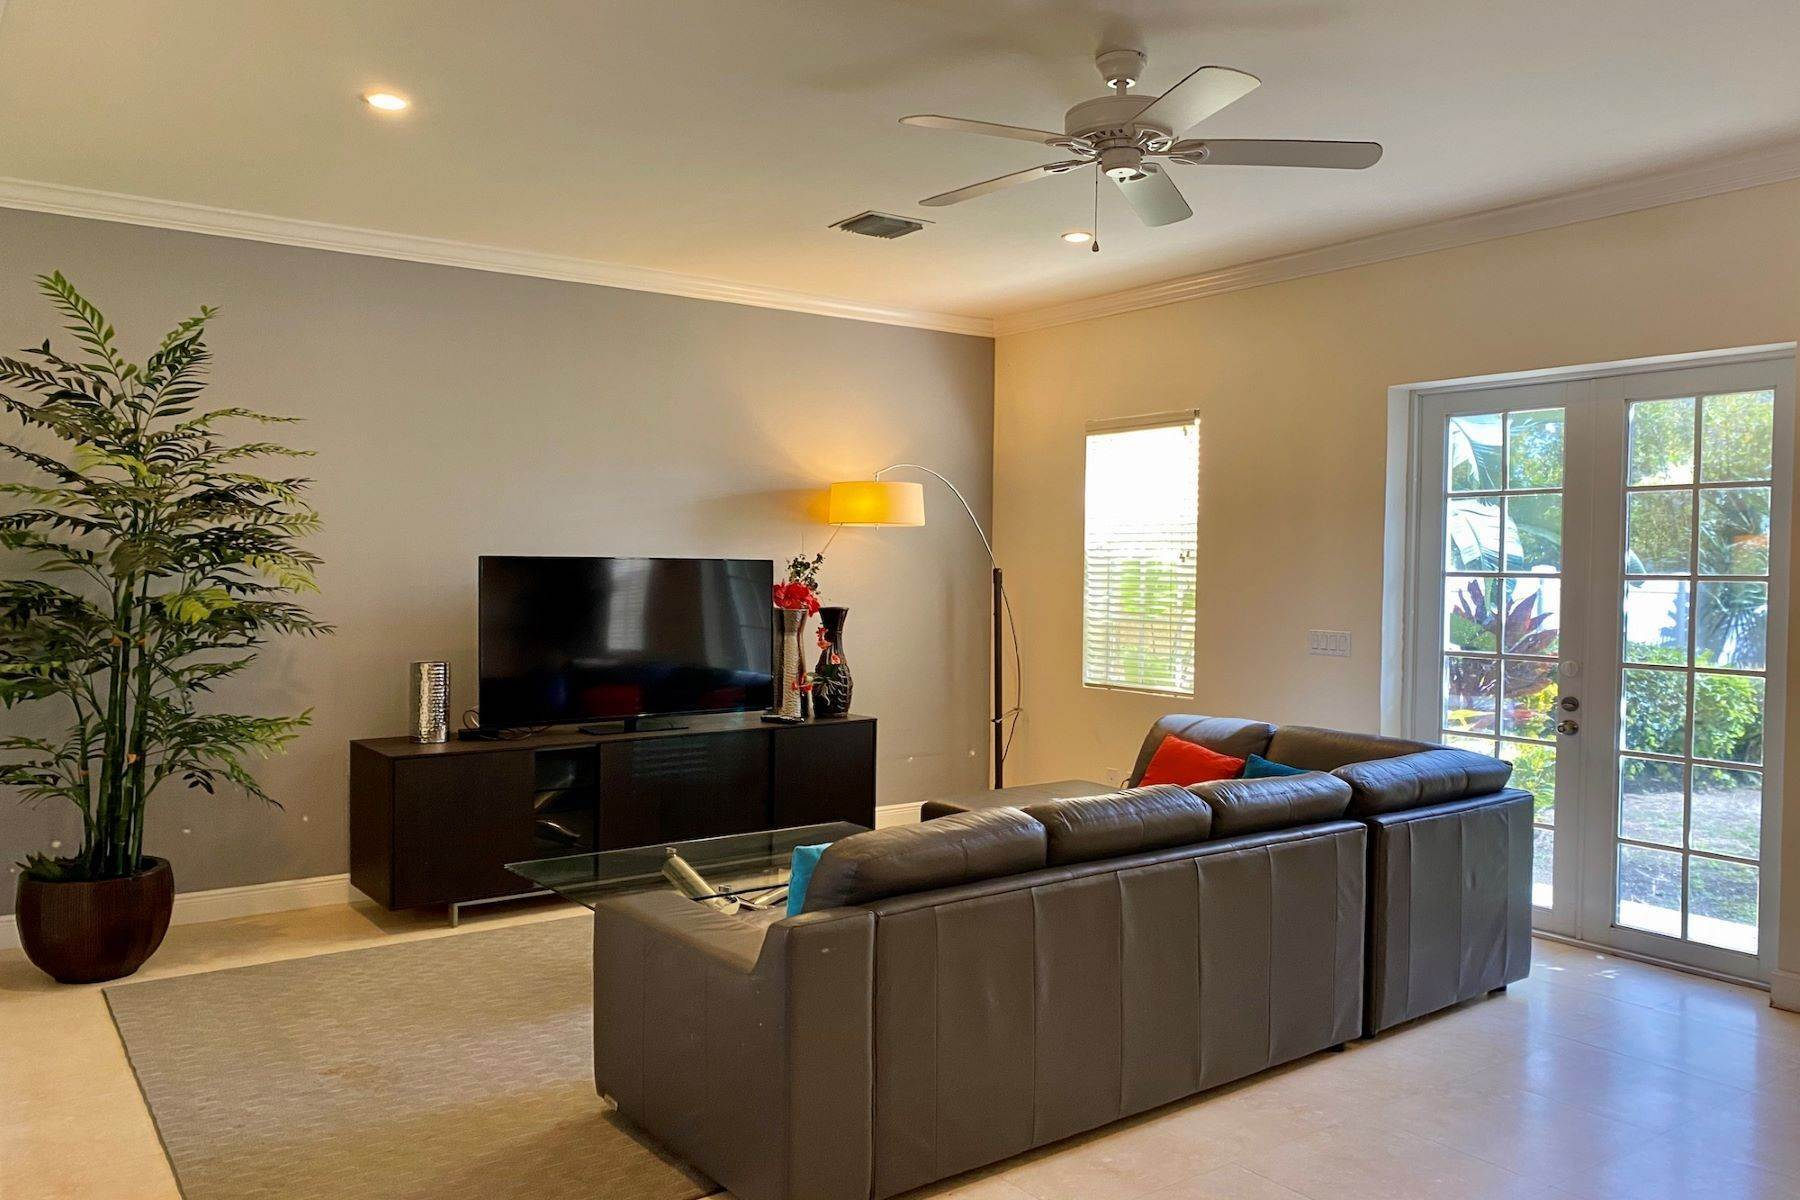 townhouses for Sale at 108 Balmoral Townhouse Balmoral, Prospect Ridge, Nassau And Paradise Island Bahamas